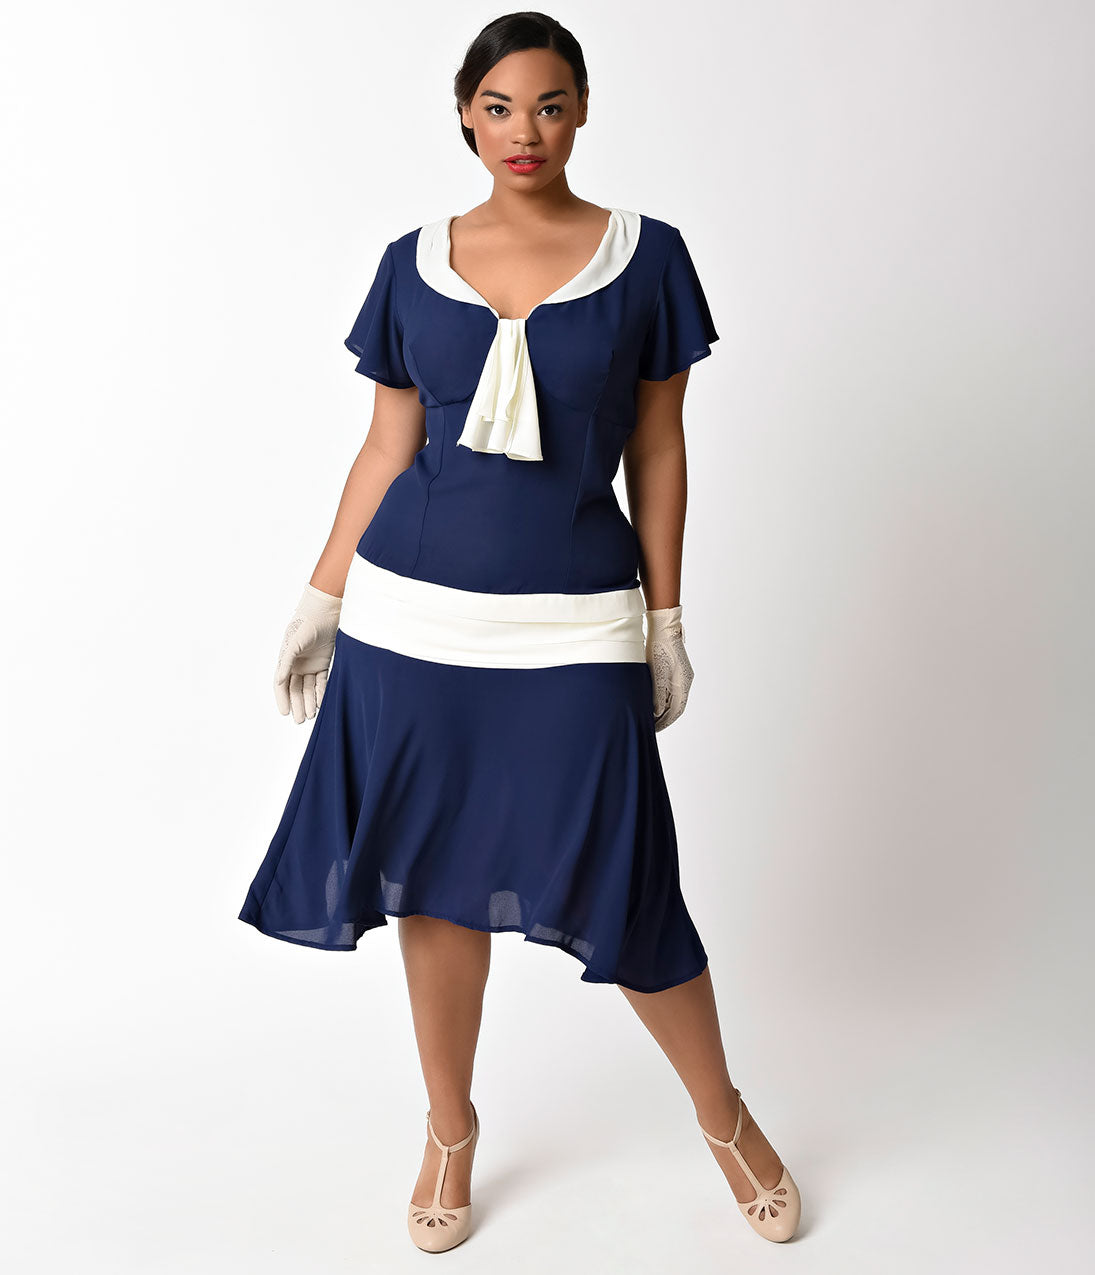 1920s Day Dresses, Tea Dresses, Mature Dresses with Sleeves Unique Vintage Plus Size 1920S Style Navy Blue  Ivory Wilshire Chiffon Flapper Day Dress $78.00 AT vintagedancer.com